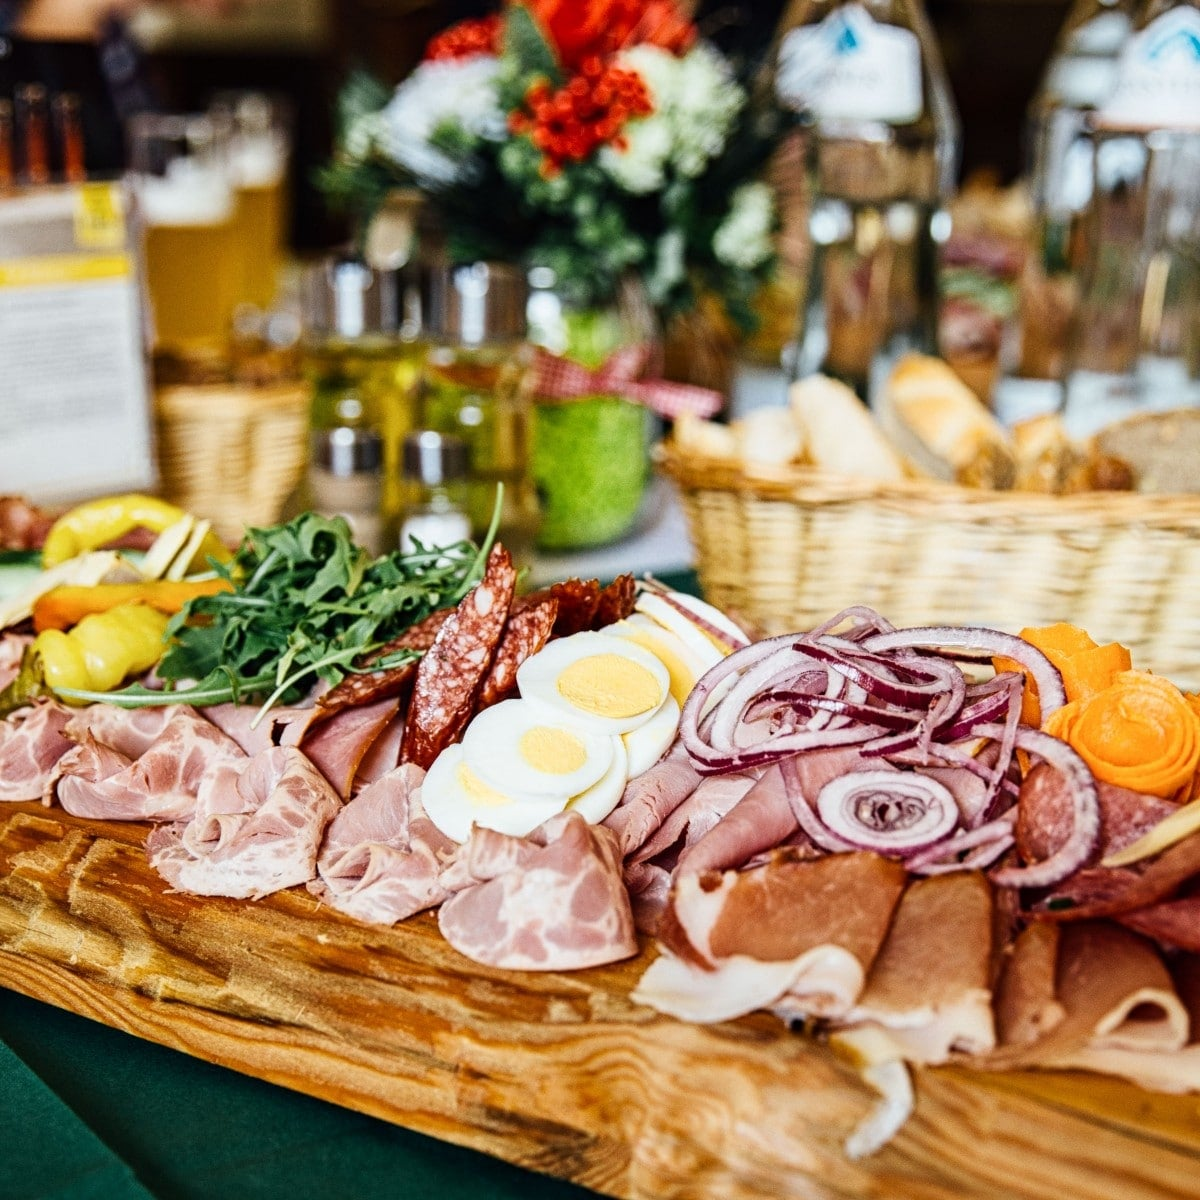 Platter of meats and cheeses served at a brewery pub